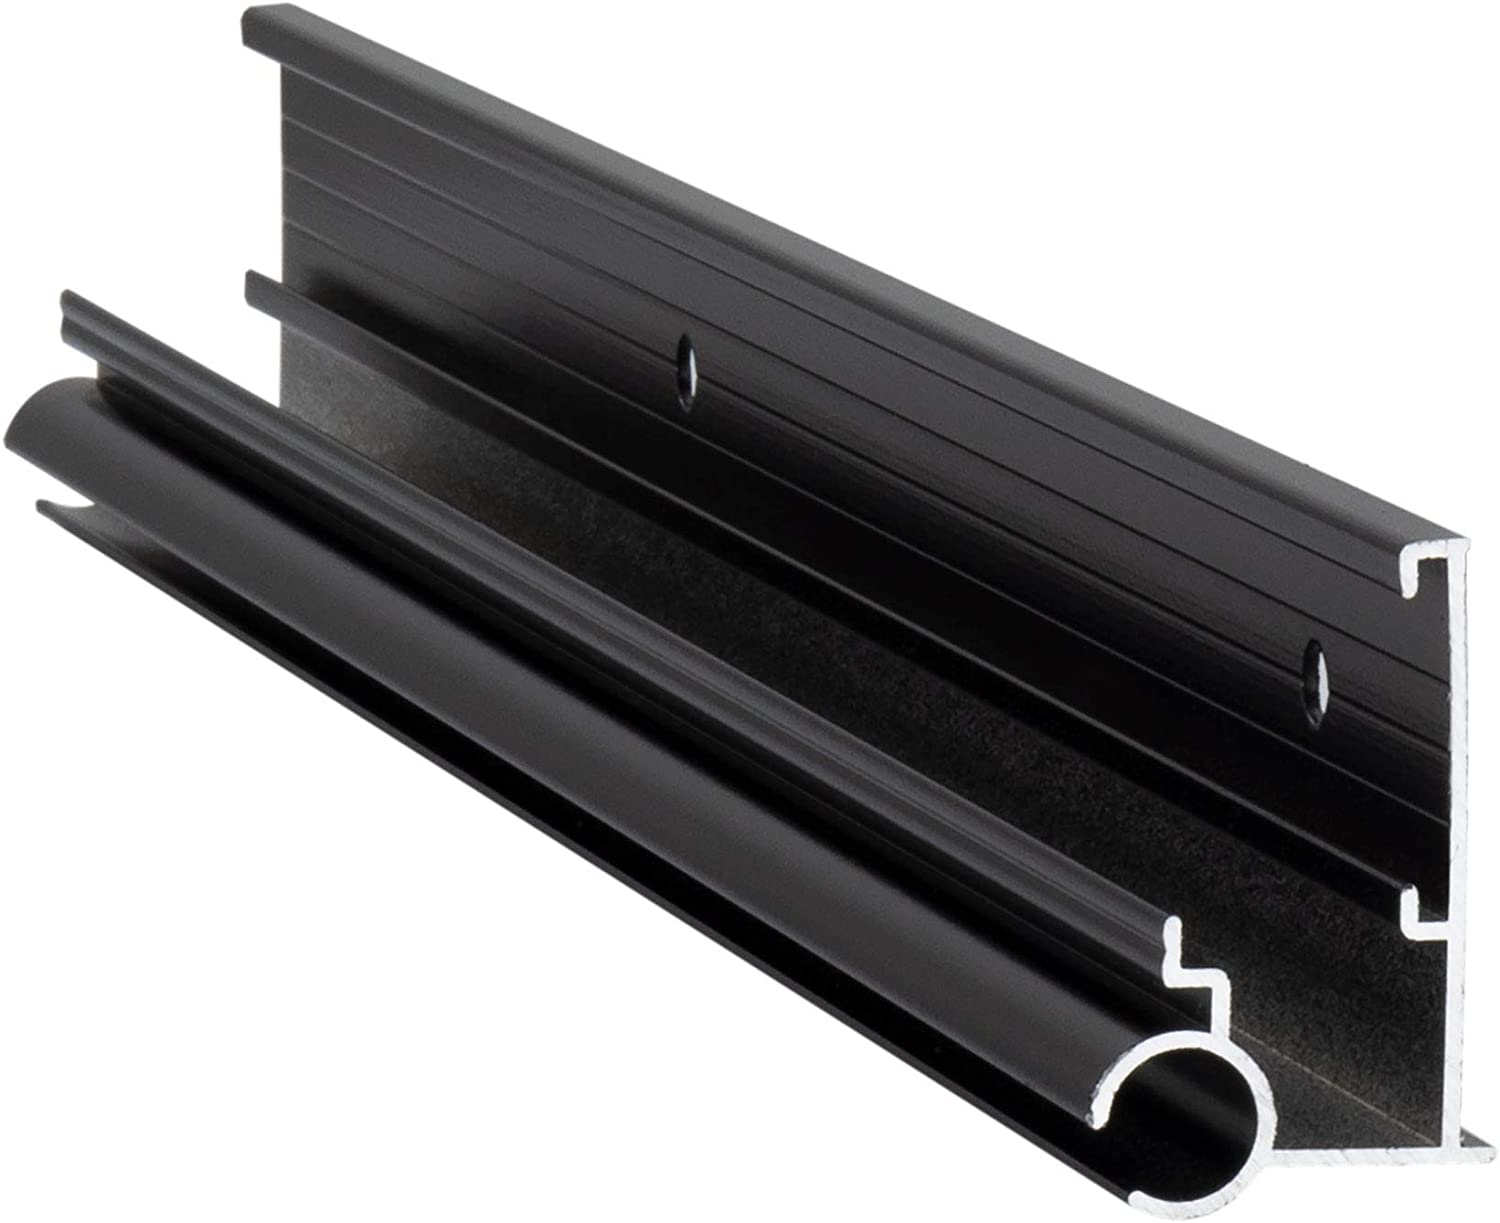 Made in USA 2 Trim Pieces, Black Aluminum 92 Length RecPro RV Awning Trim with Gutter